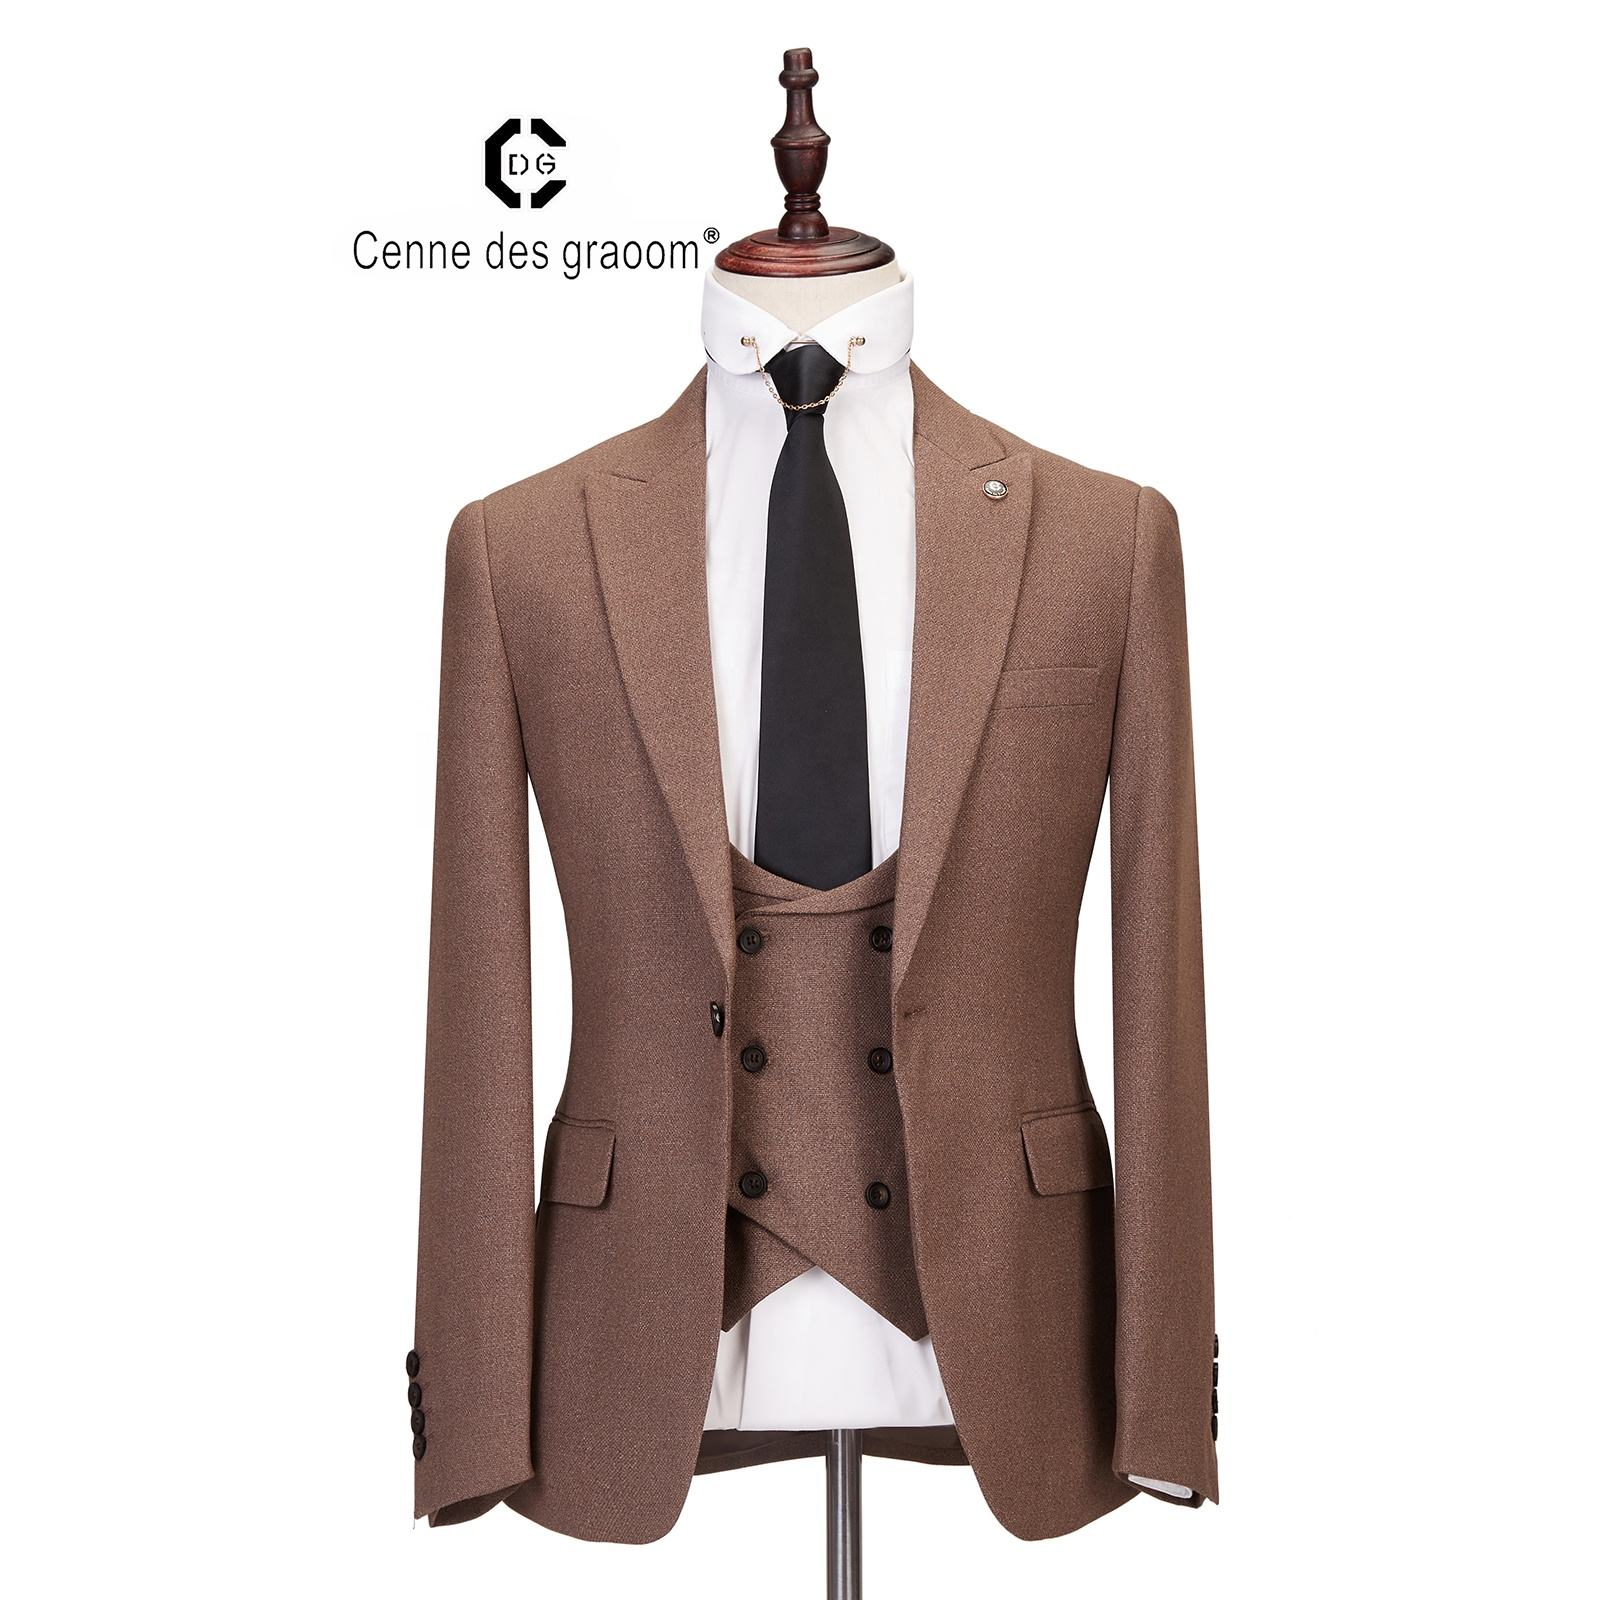 Mens Suits 3 Piece Slim Fit Wedding coffee Business Dinner Suit for Men Cenne des graoom Lapel Blazer Waistcoat Trousers